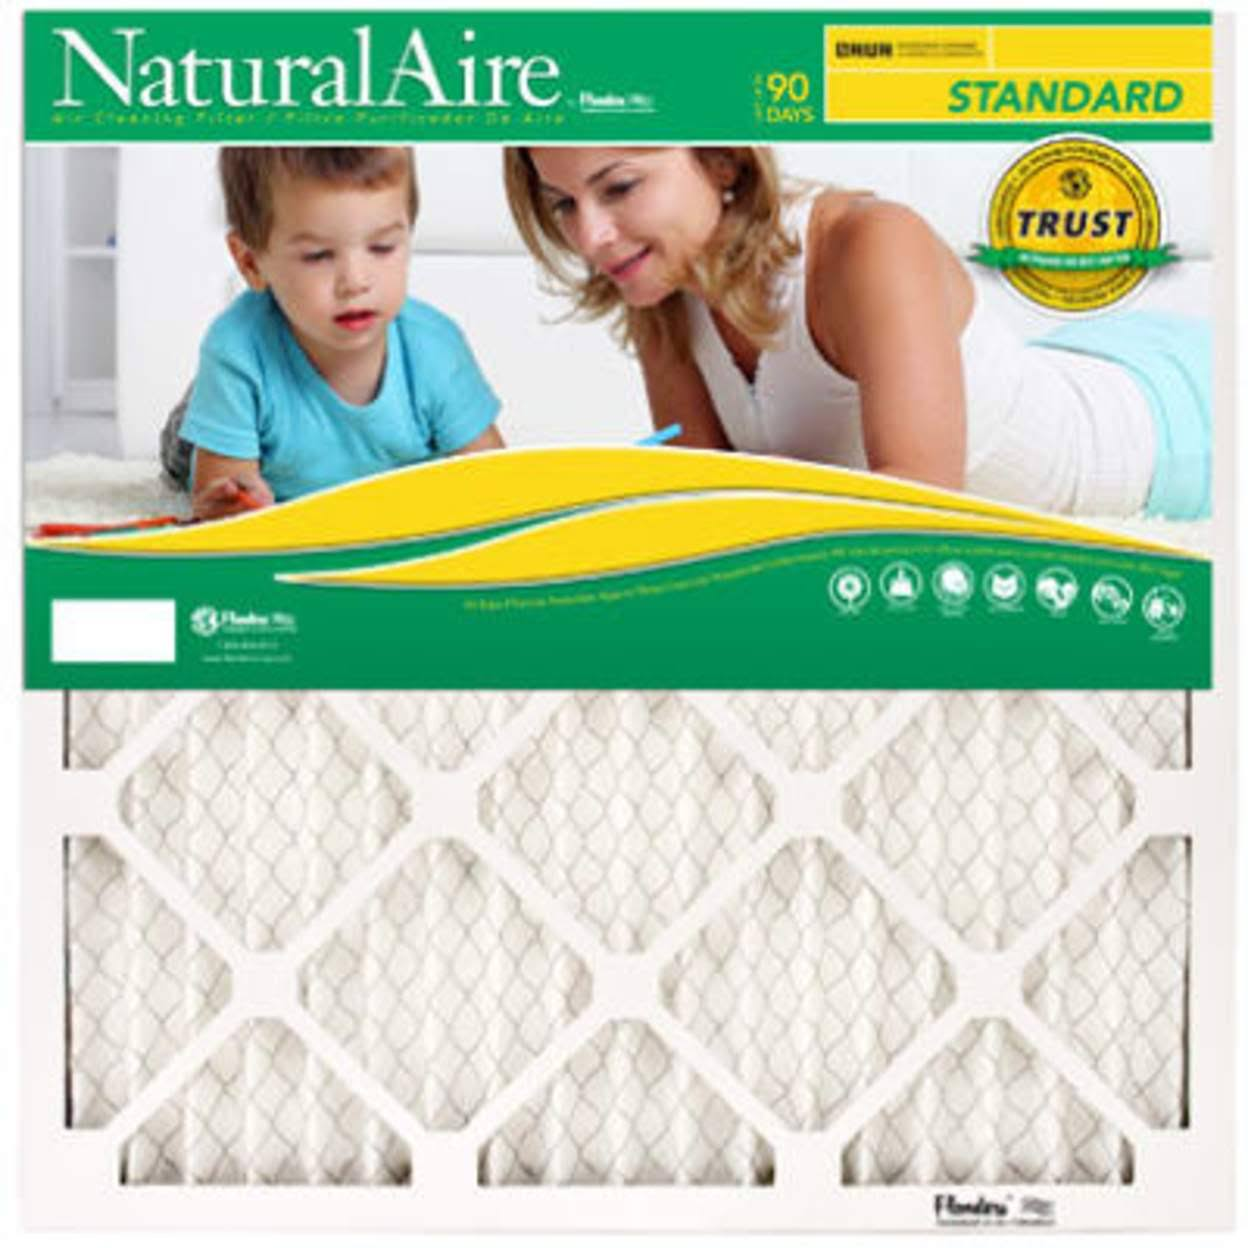 "Naturalaire Standard Air Filter - Merv 8, 10""x10""x1"""